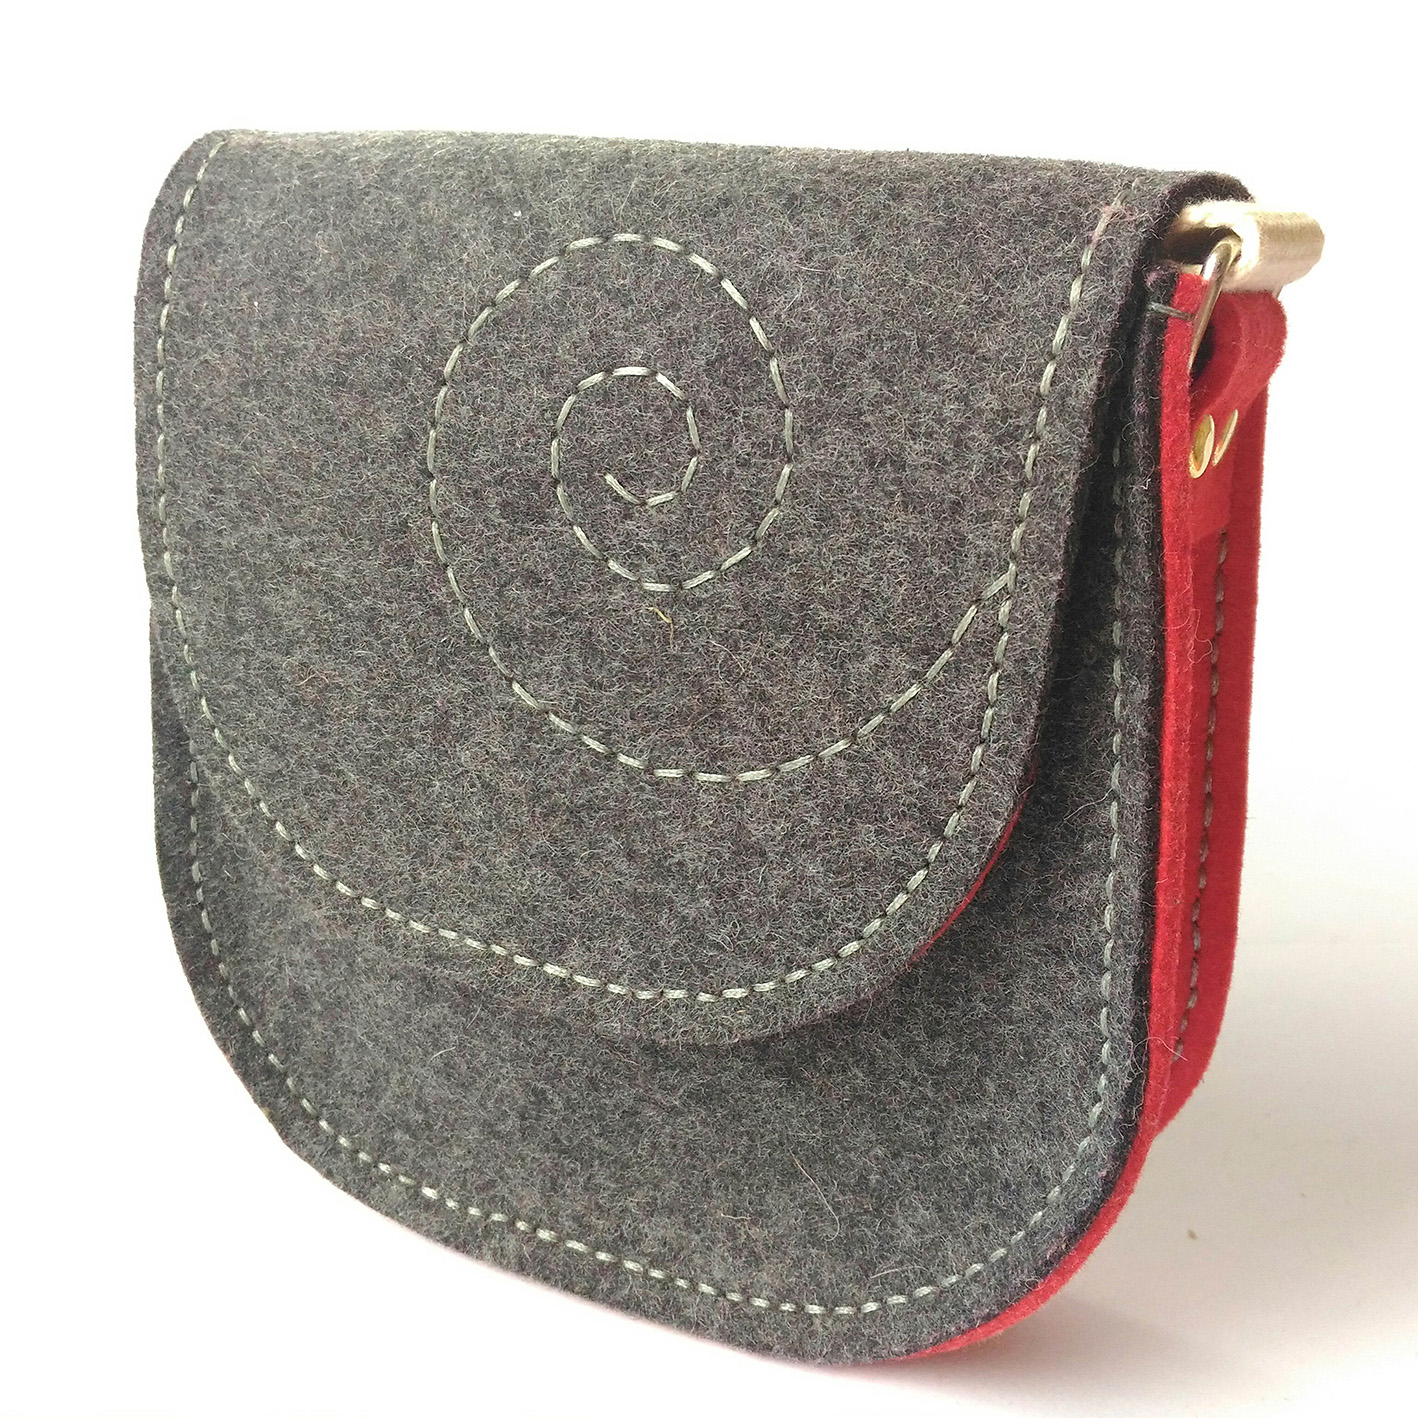 Rino_Nobel_felt bag